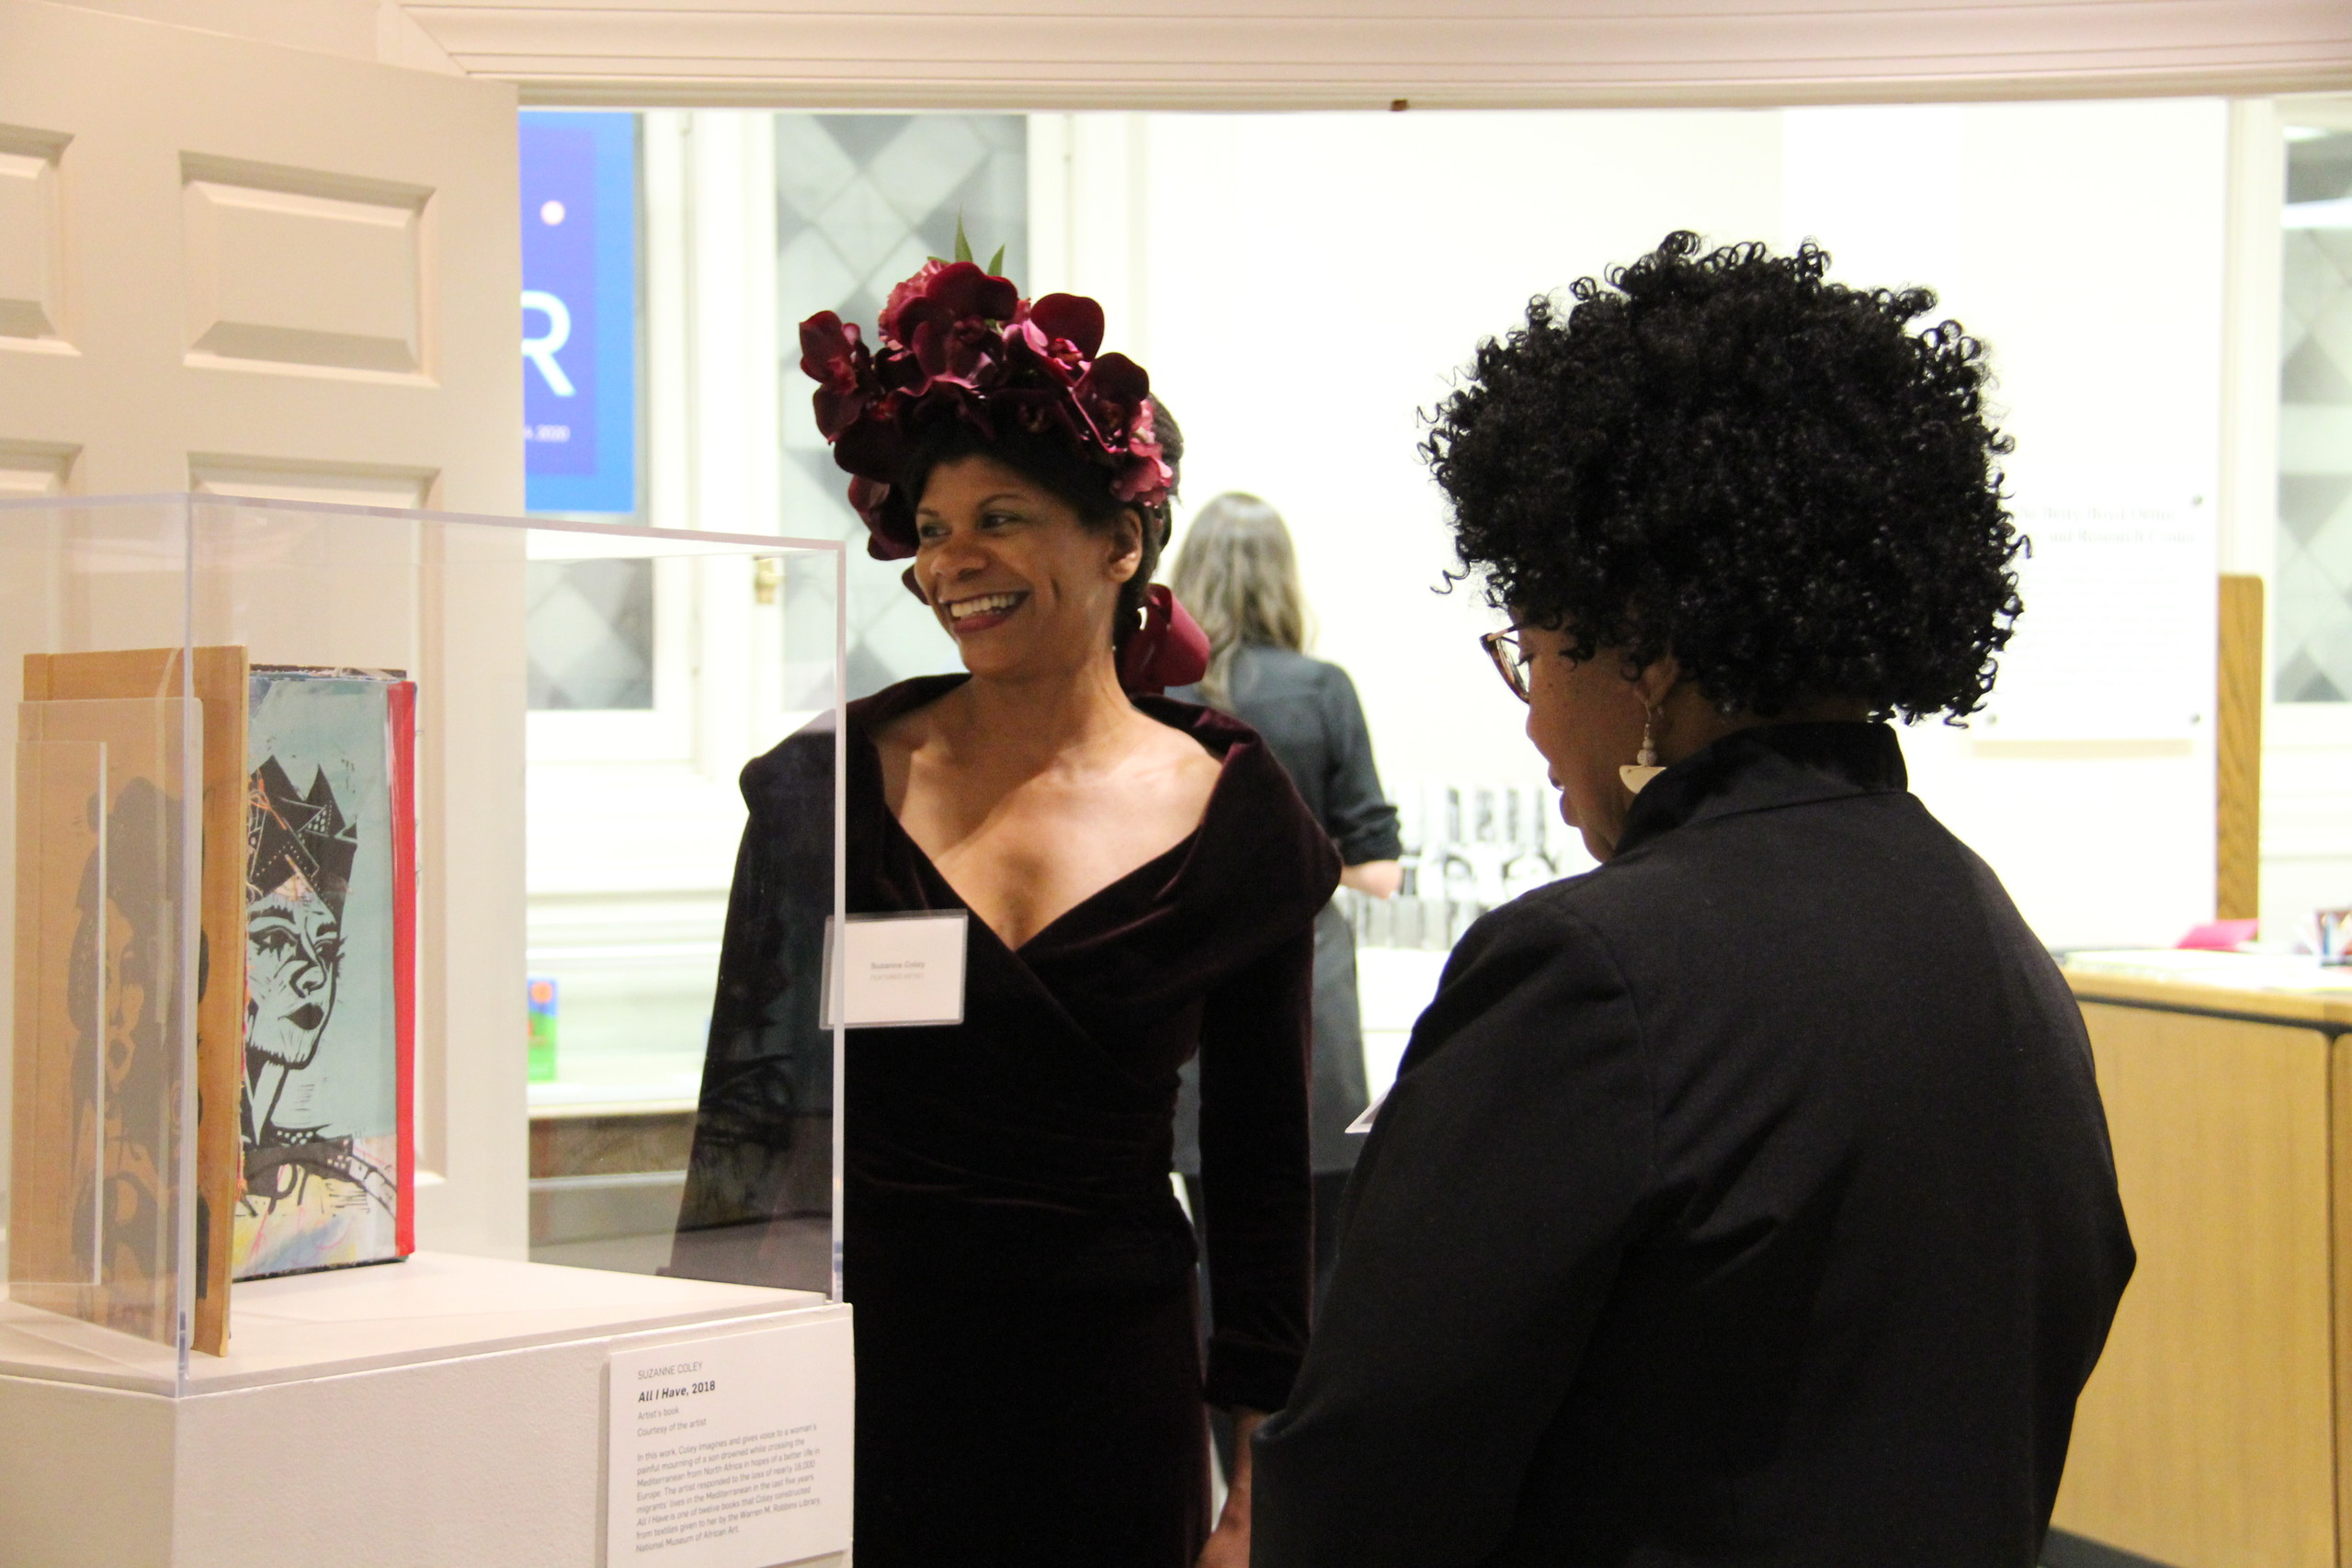 A dark-skinned woman wearing a maroon velvet floral headpiece and a velvet dress of the same color stands in front of an exhibition case smiling and looking toward the artwork in the case. Another dark-skinned woman stands with her back to the camera viewing the artwork.